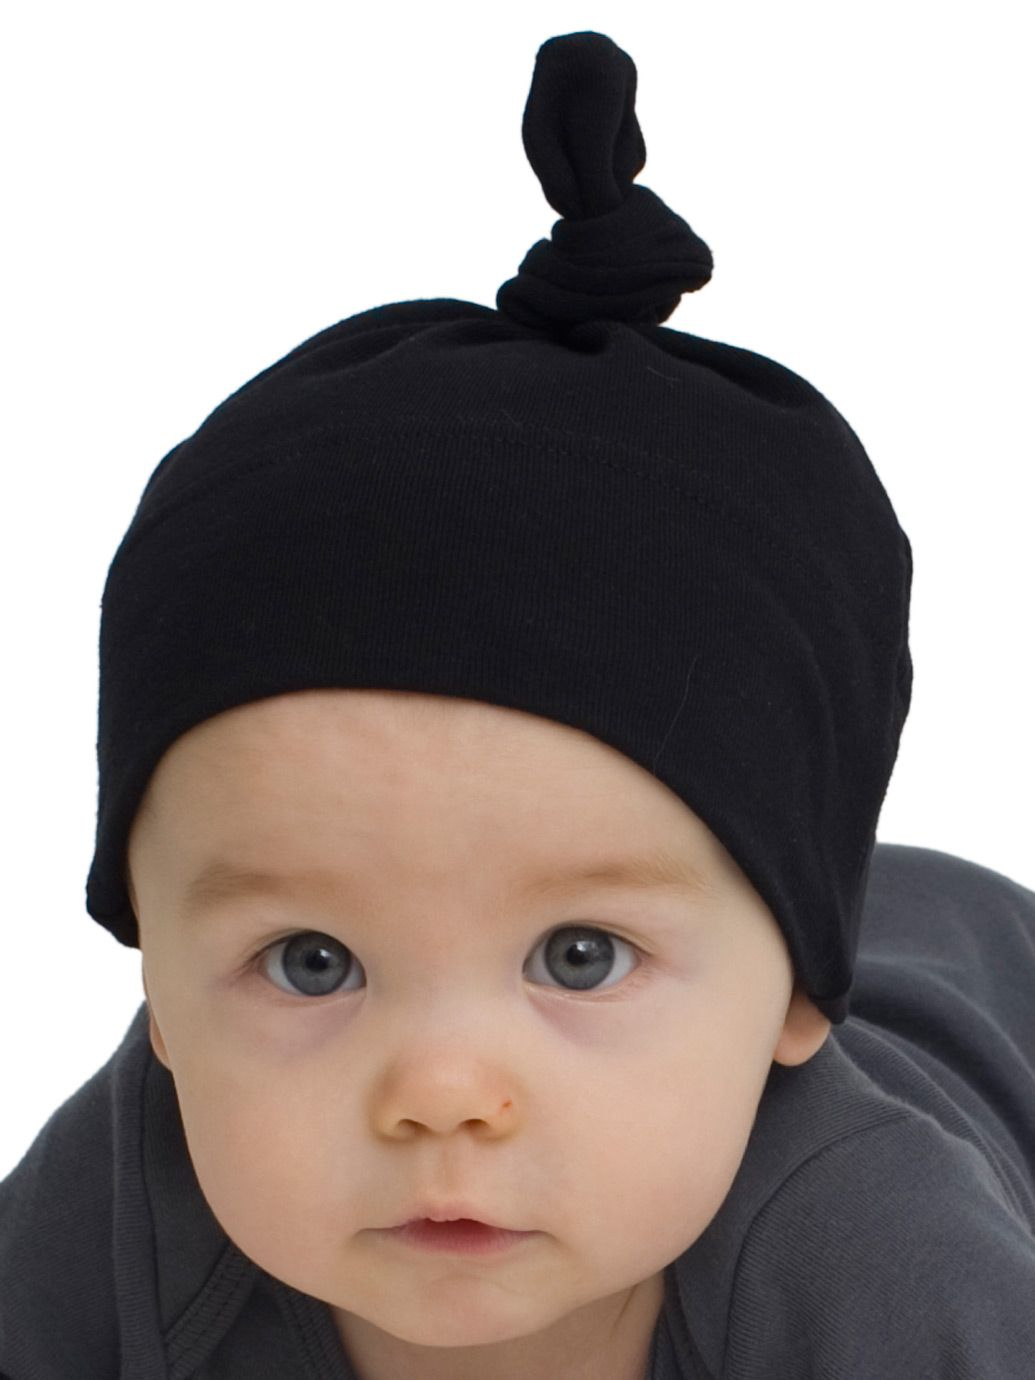 American Apparel Infant Baby Rib Hat - Evan Webster INK 060928f159d